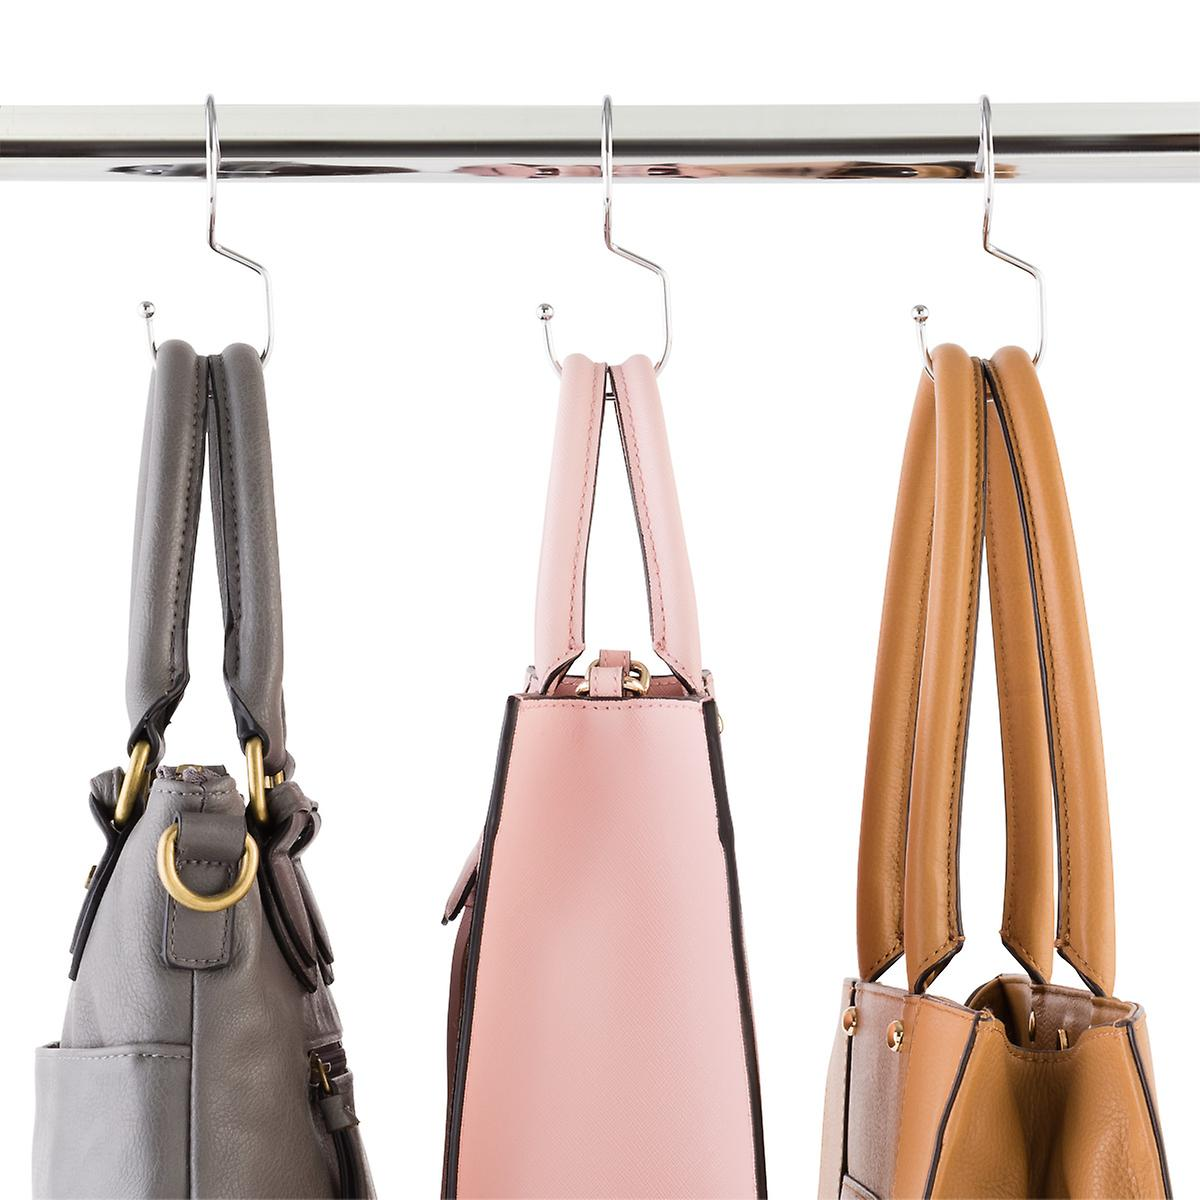 Chrome Metal Purse Hangers | The Container Store